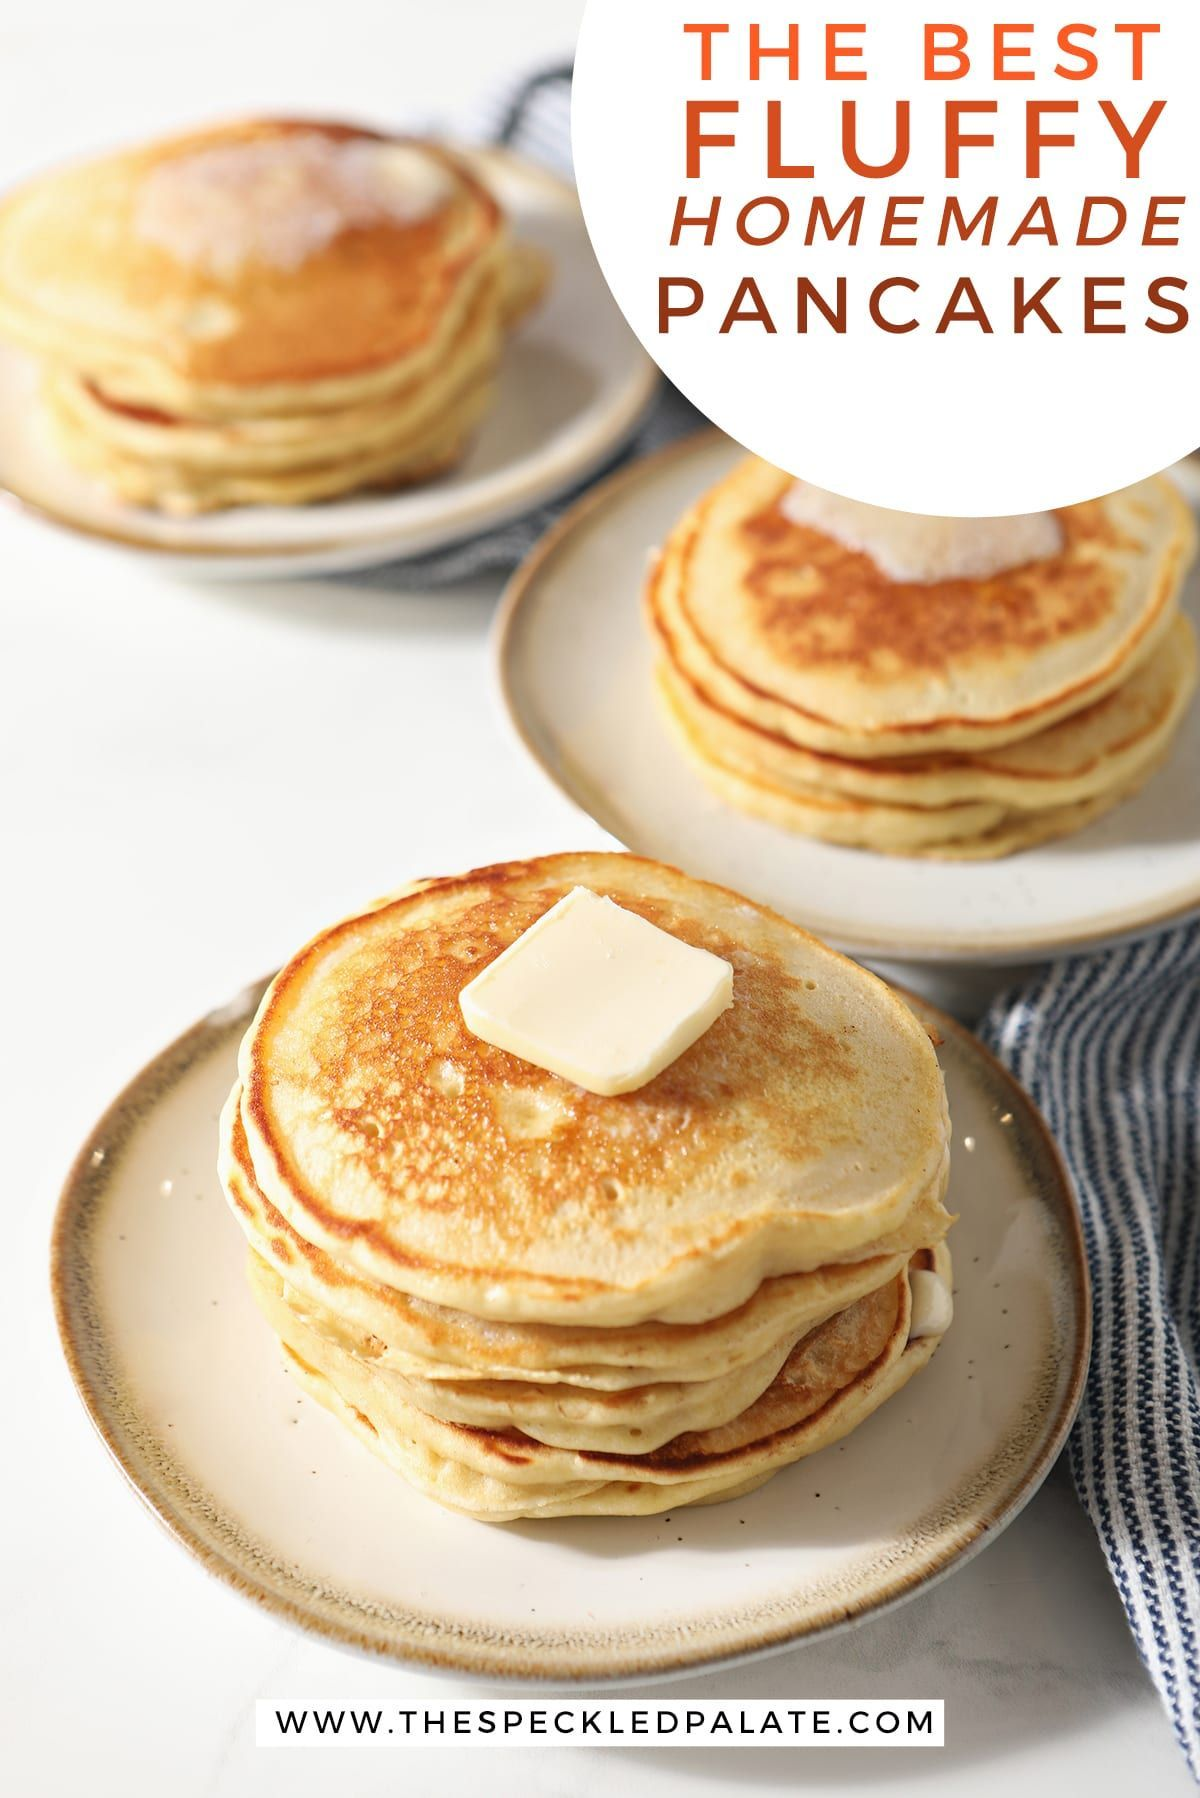 Old Fashioned Pancake Recipe Easy Fluffy Homemade Pancakes Recipe In 2021 Pancake Recipe Easy Fluffy Recipes Pancake Recipe Easy